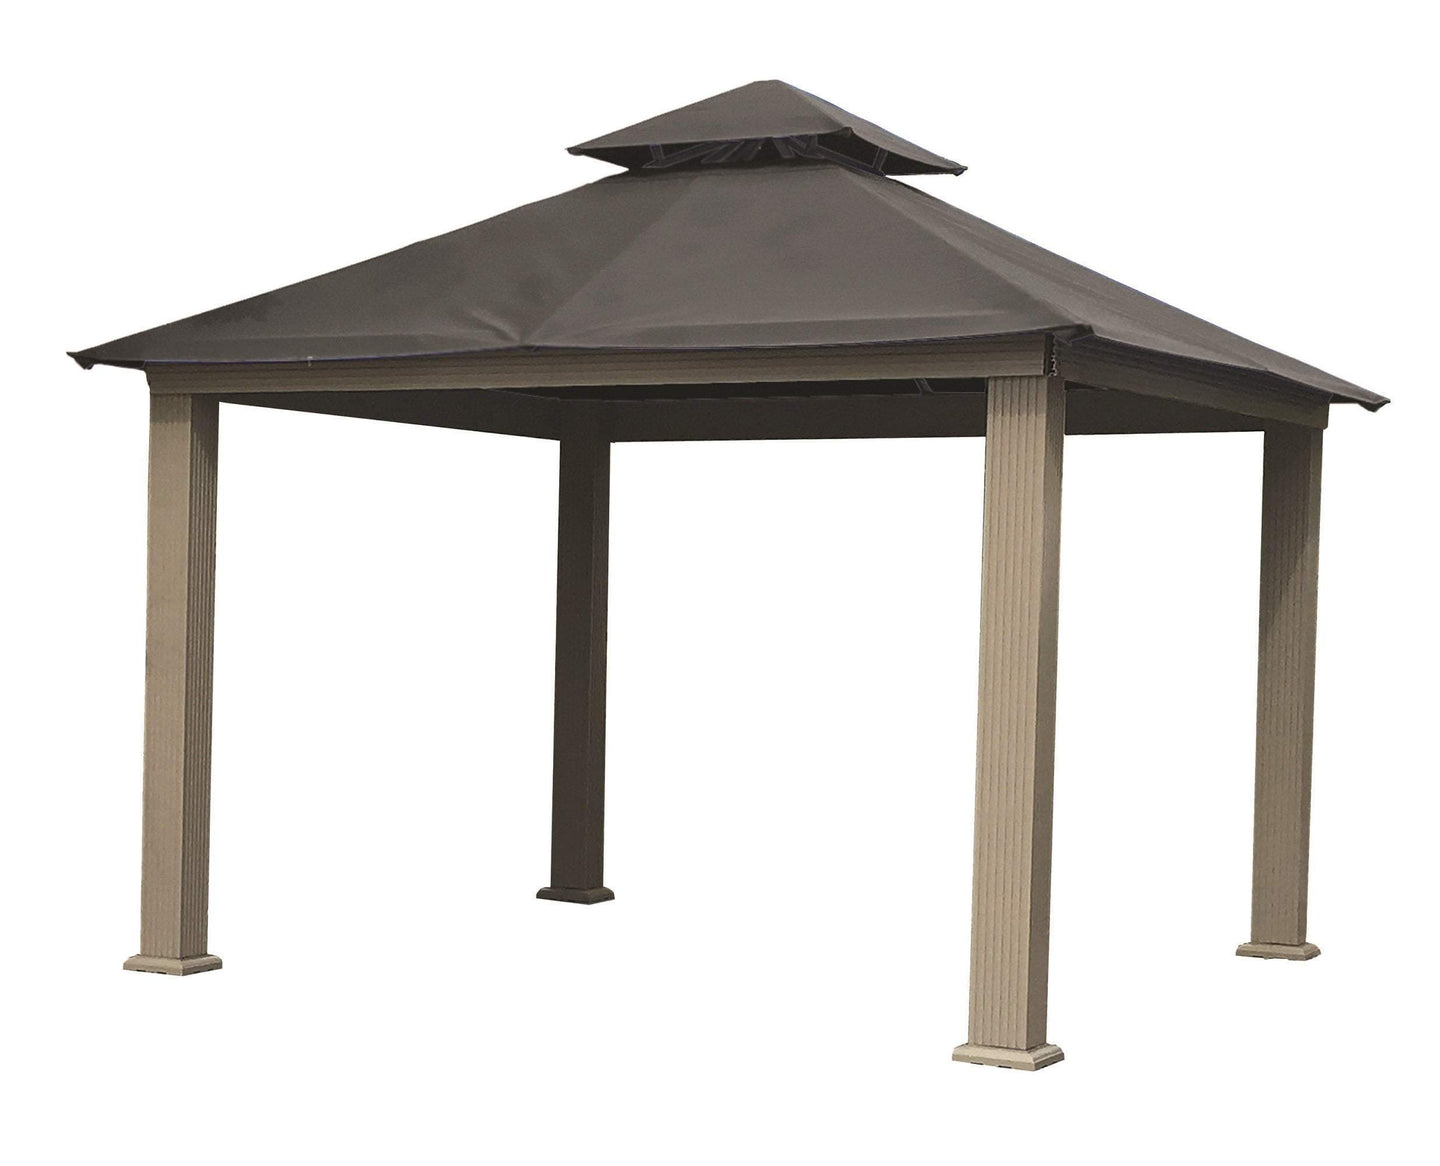 Riverstone Industries Gazebo Storm Gray Riverstone Industries - 12 FT SQ ACACIA SunDURA Gazebo